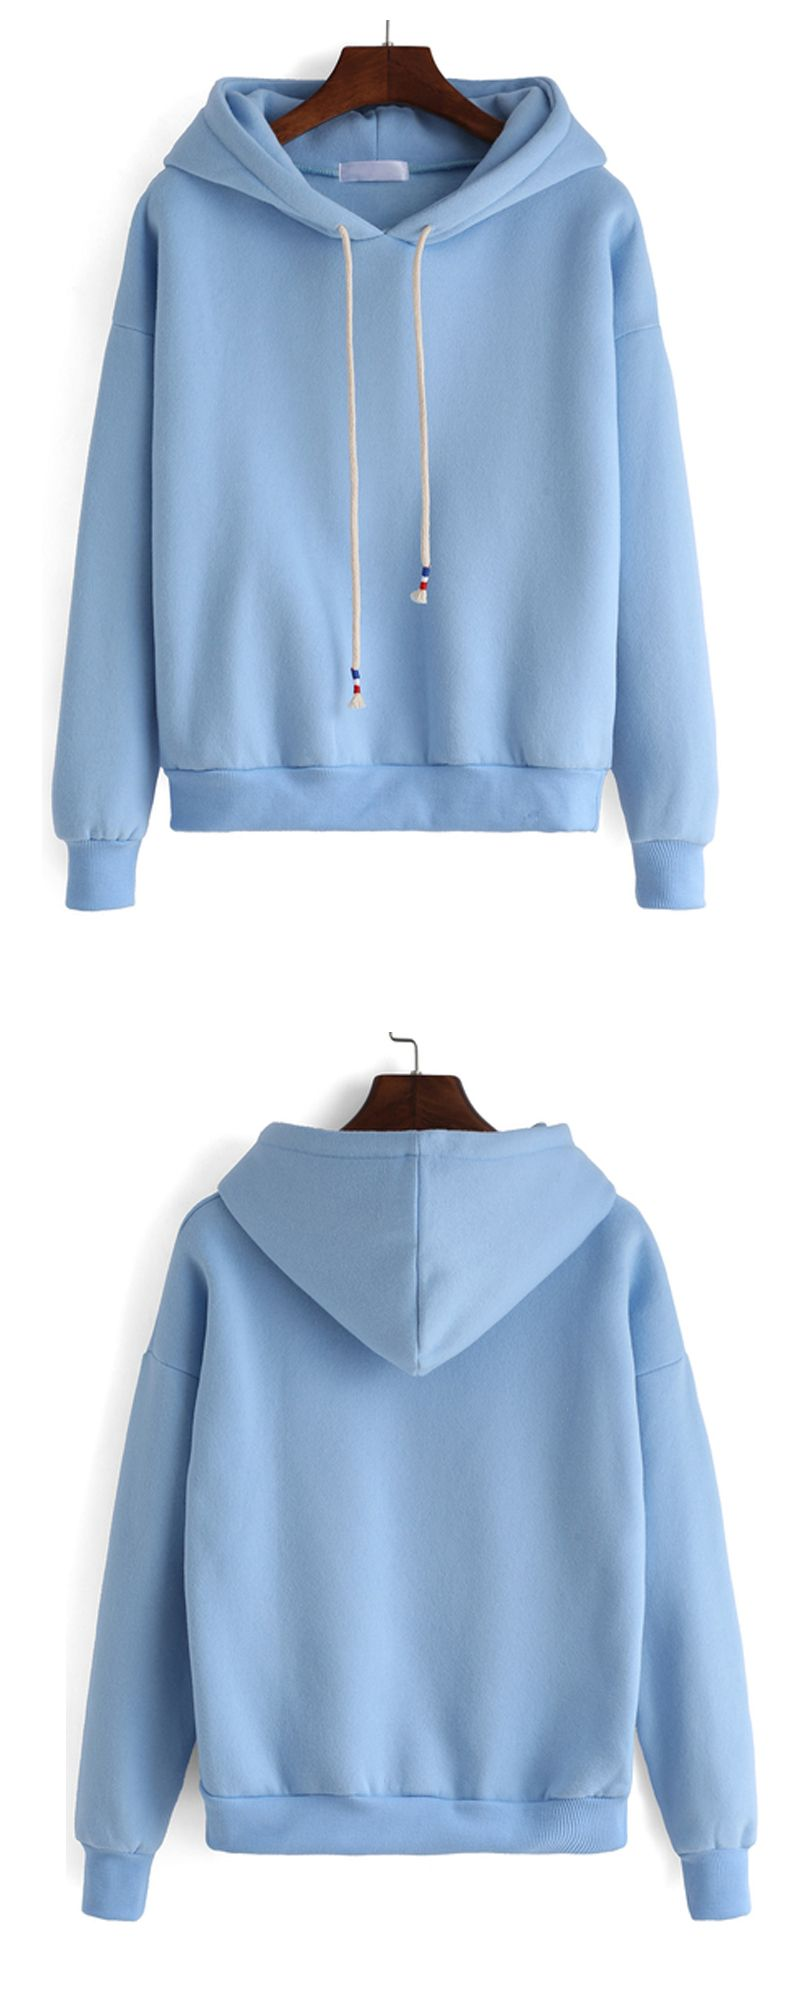 Plain hooded drawstring loose sweatshirt in blue.That's so ...